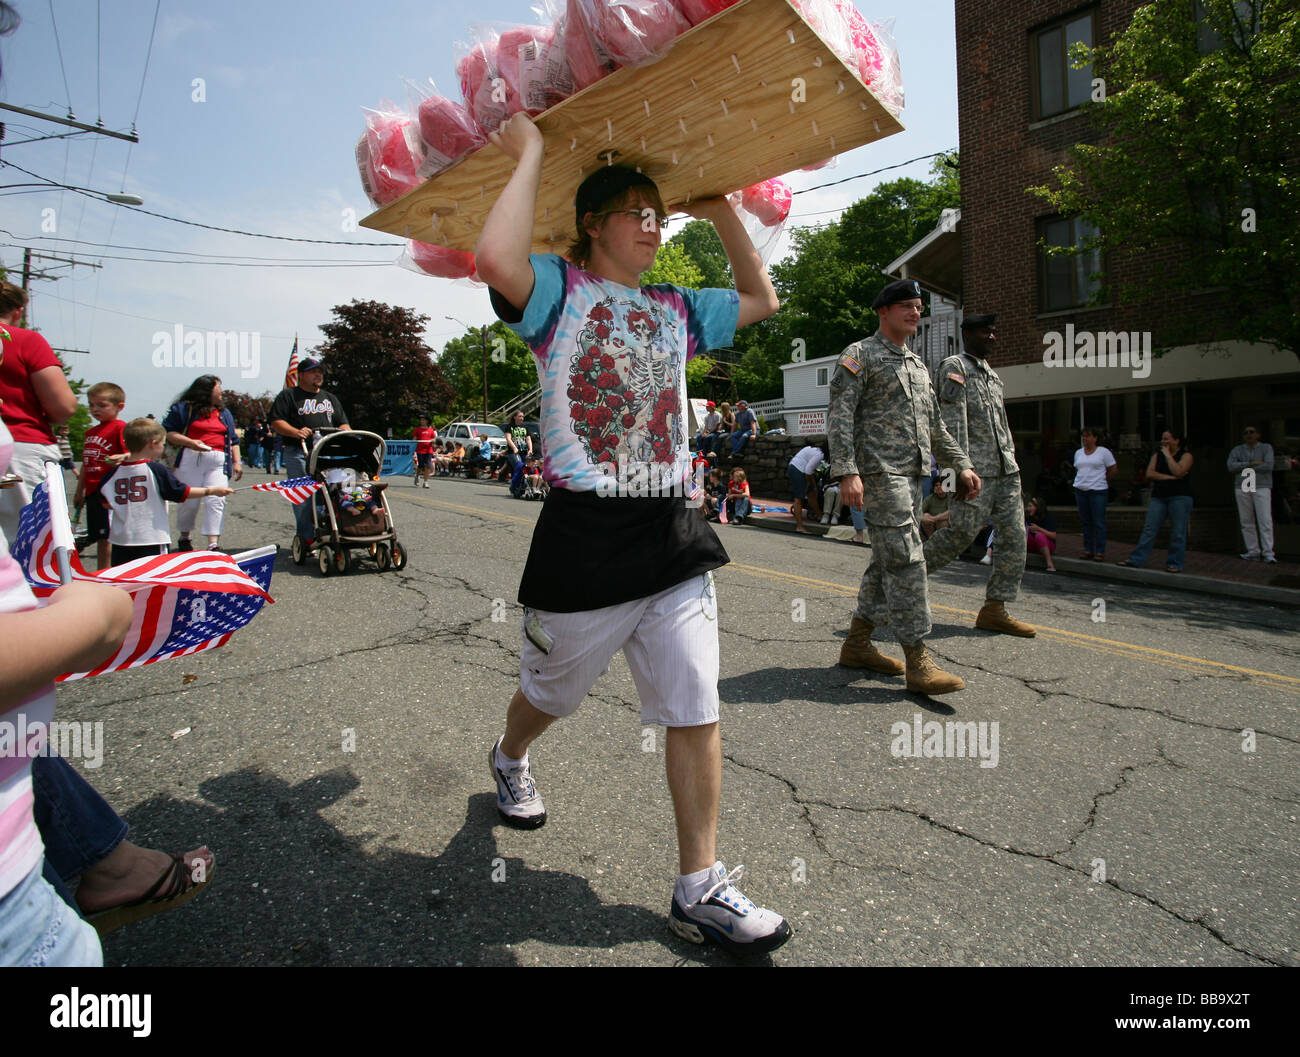 A Cotton Candy seller walks along during a Memorial Day Parade in Seymour CT USA. Typical American summer parade - Stock Image